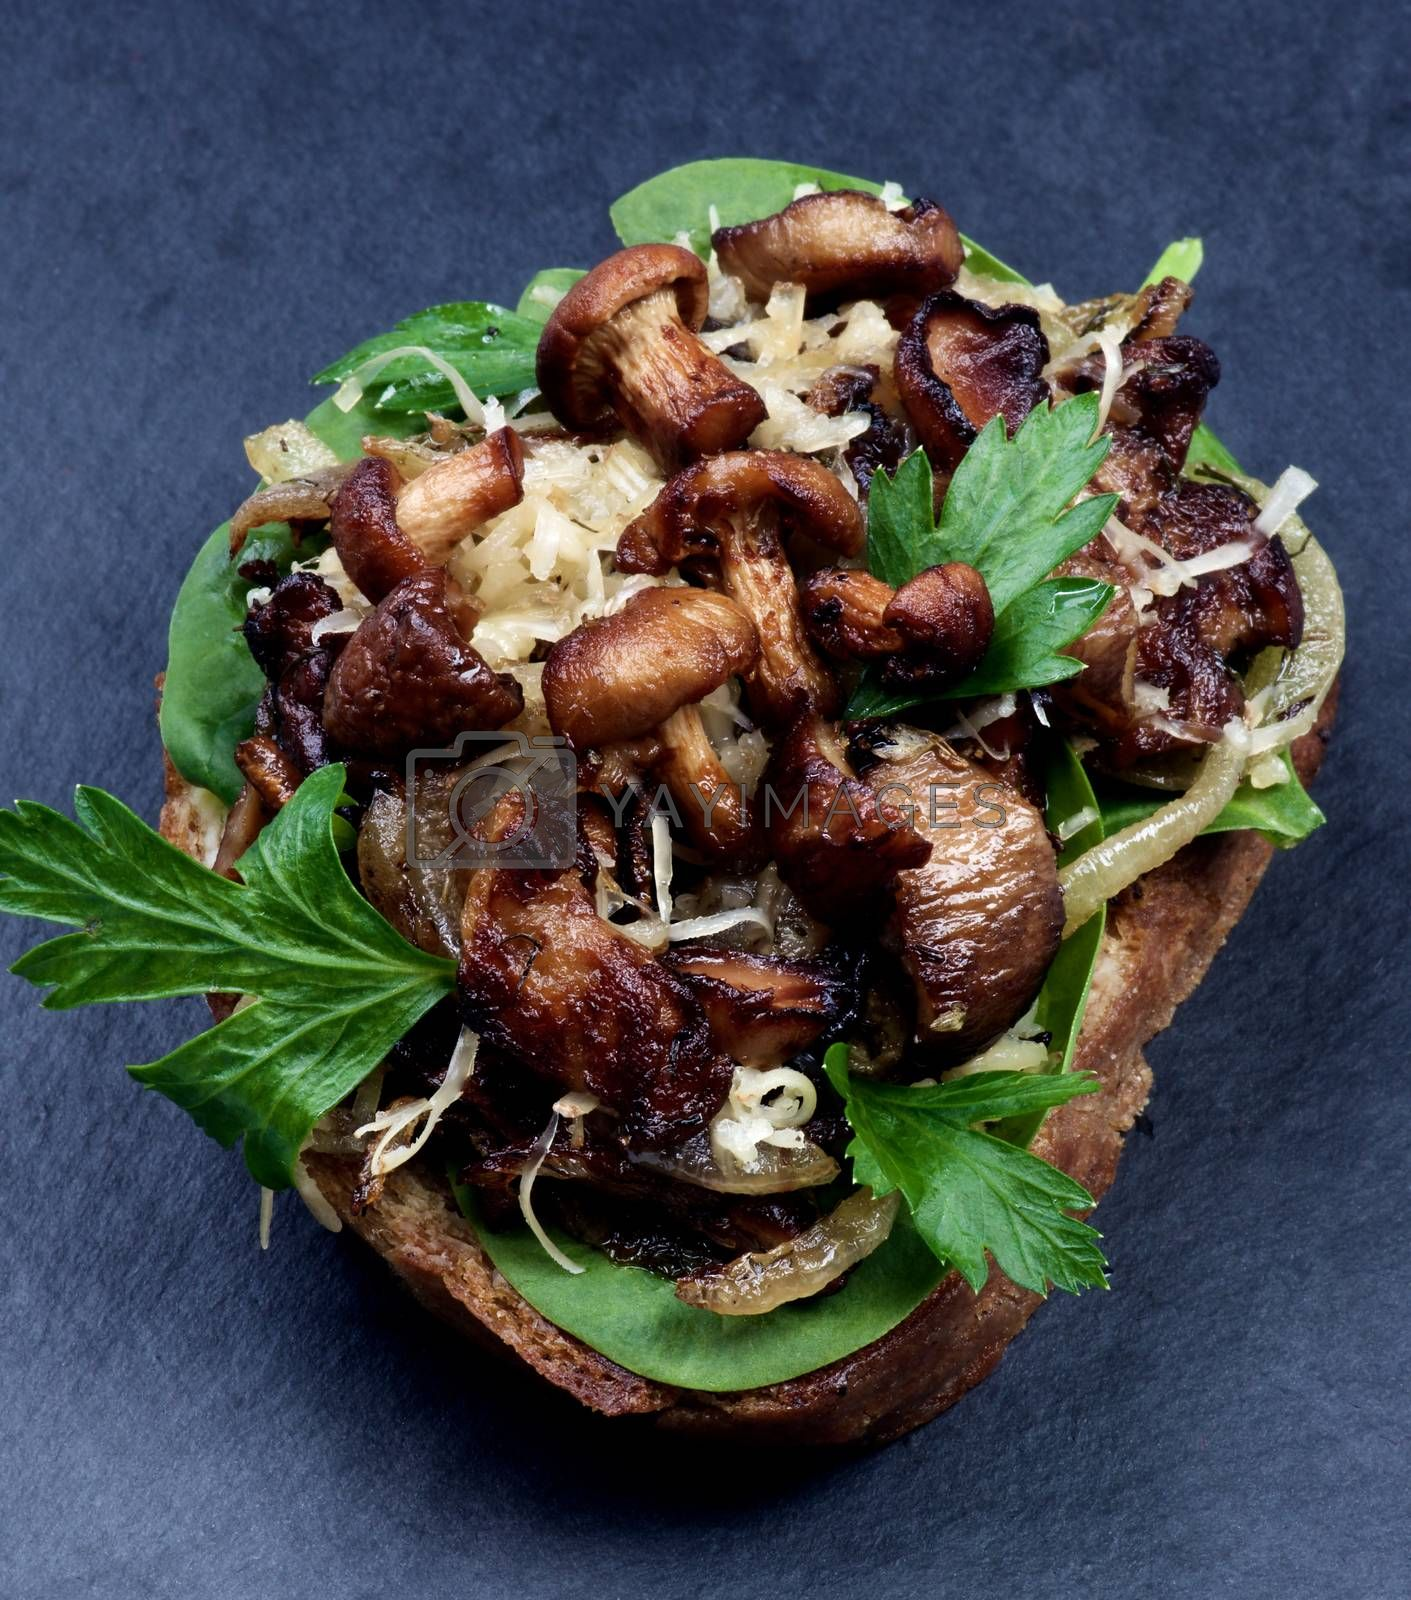 Delicious Roasted Sandwiches Crostini with Mushrooms Chanterelles, Cheese, Parsley and Sliced Onion on Whole Grain Bread closeup on Slate background